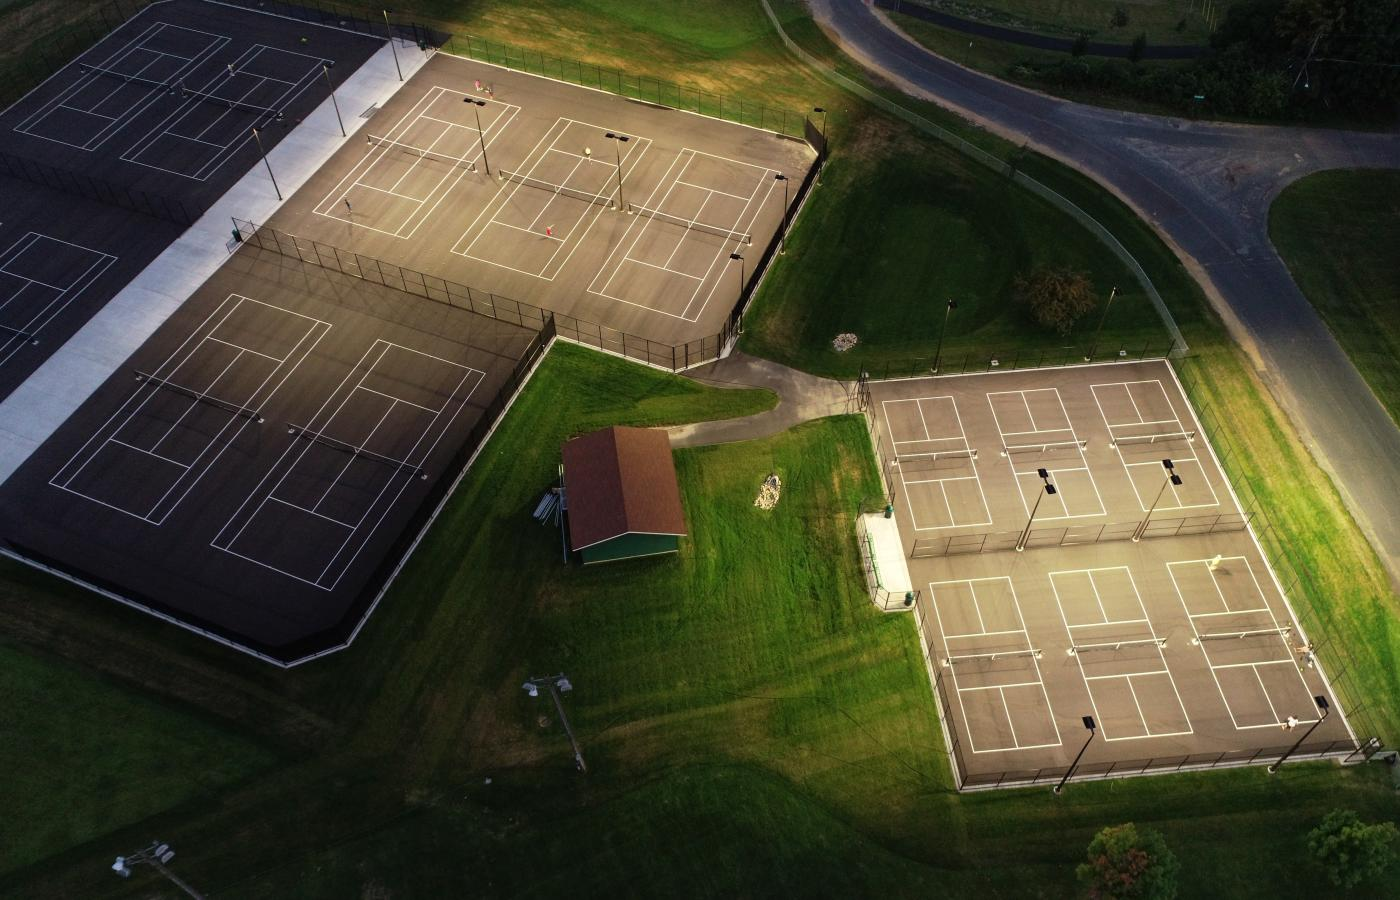 Chisago Lakes Tennis Courts - 2